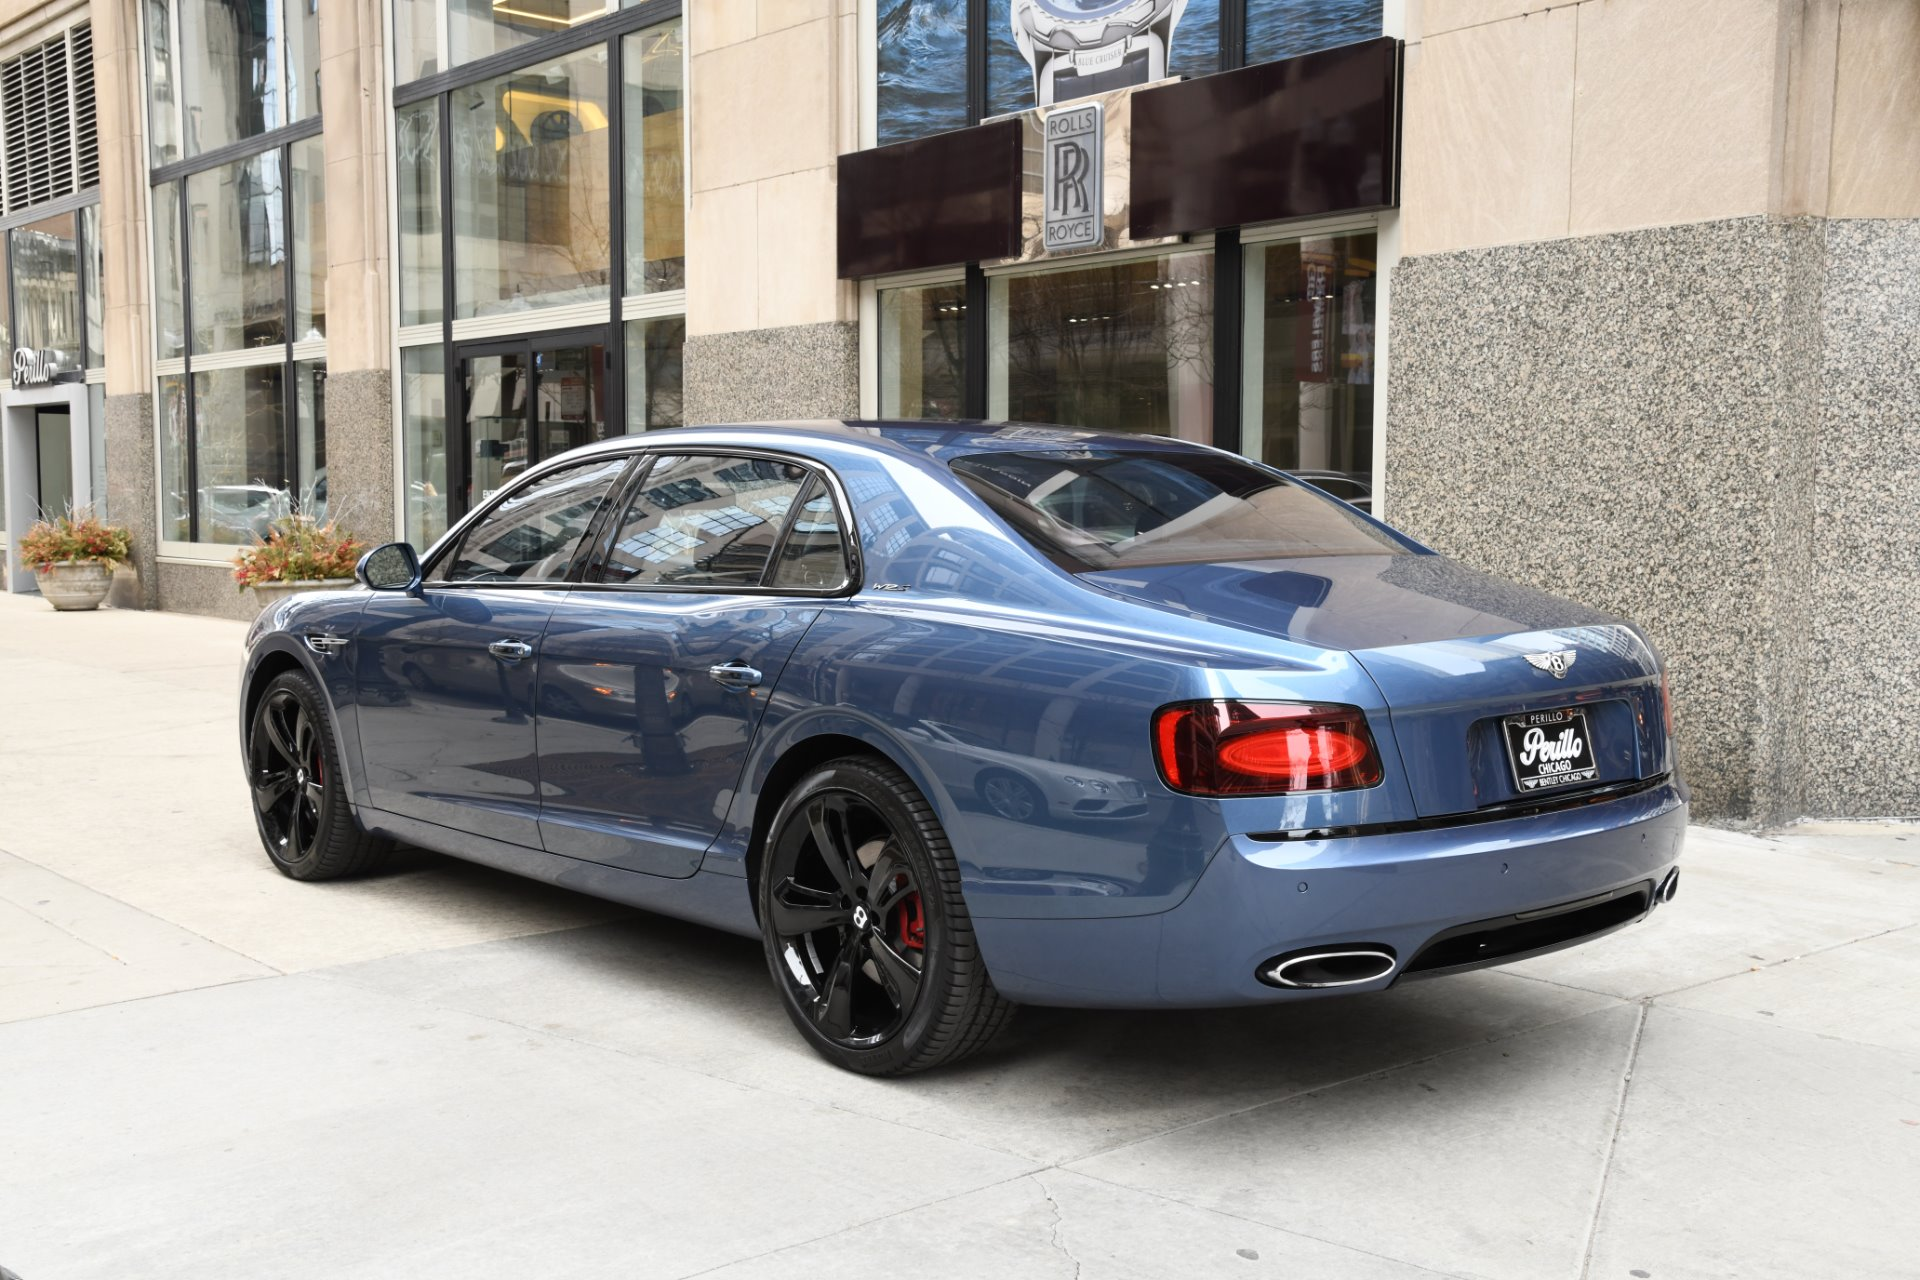 2017 bentley flying spur w12 s w12 s stock b1035 s for sale near chicago il il bentley dealer. Black Bedroom Furniture Sets. Home Design Ideas